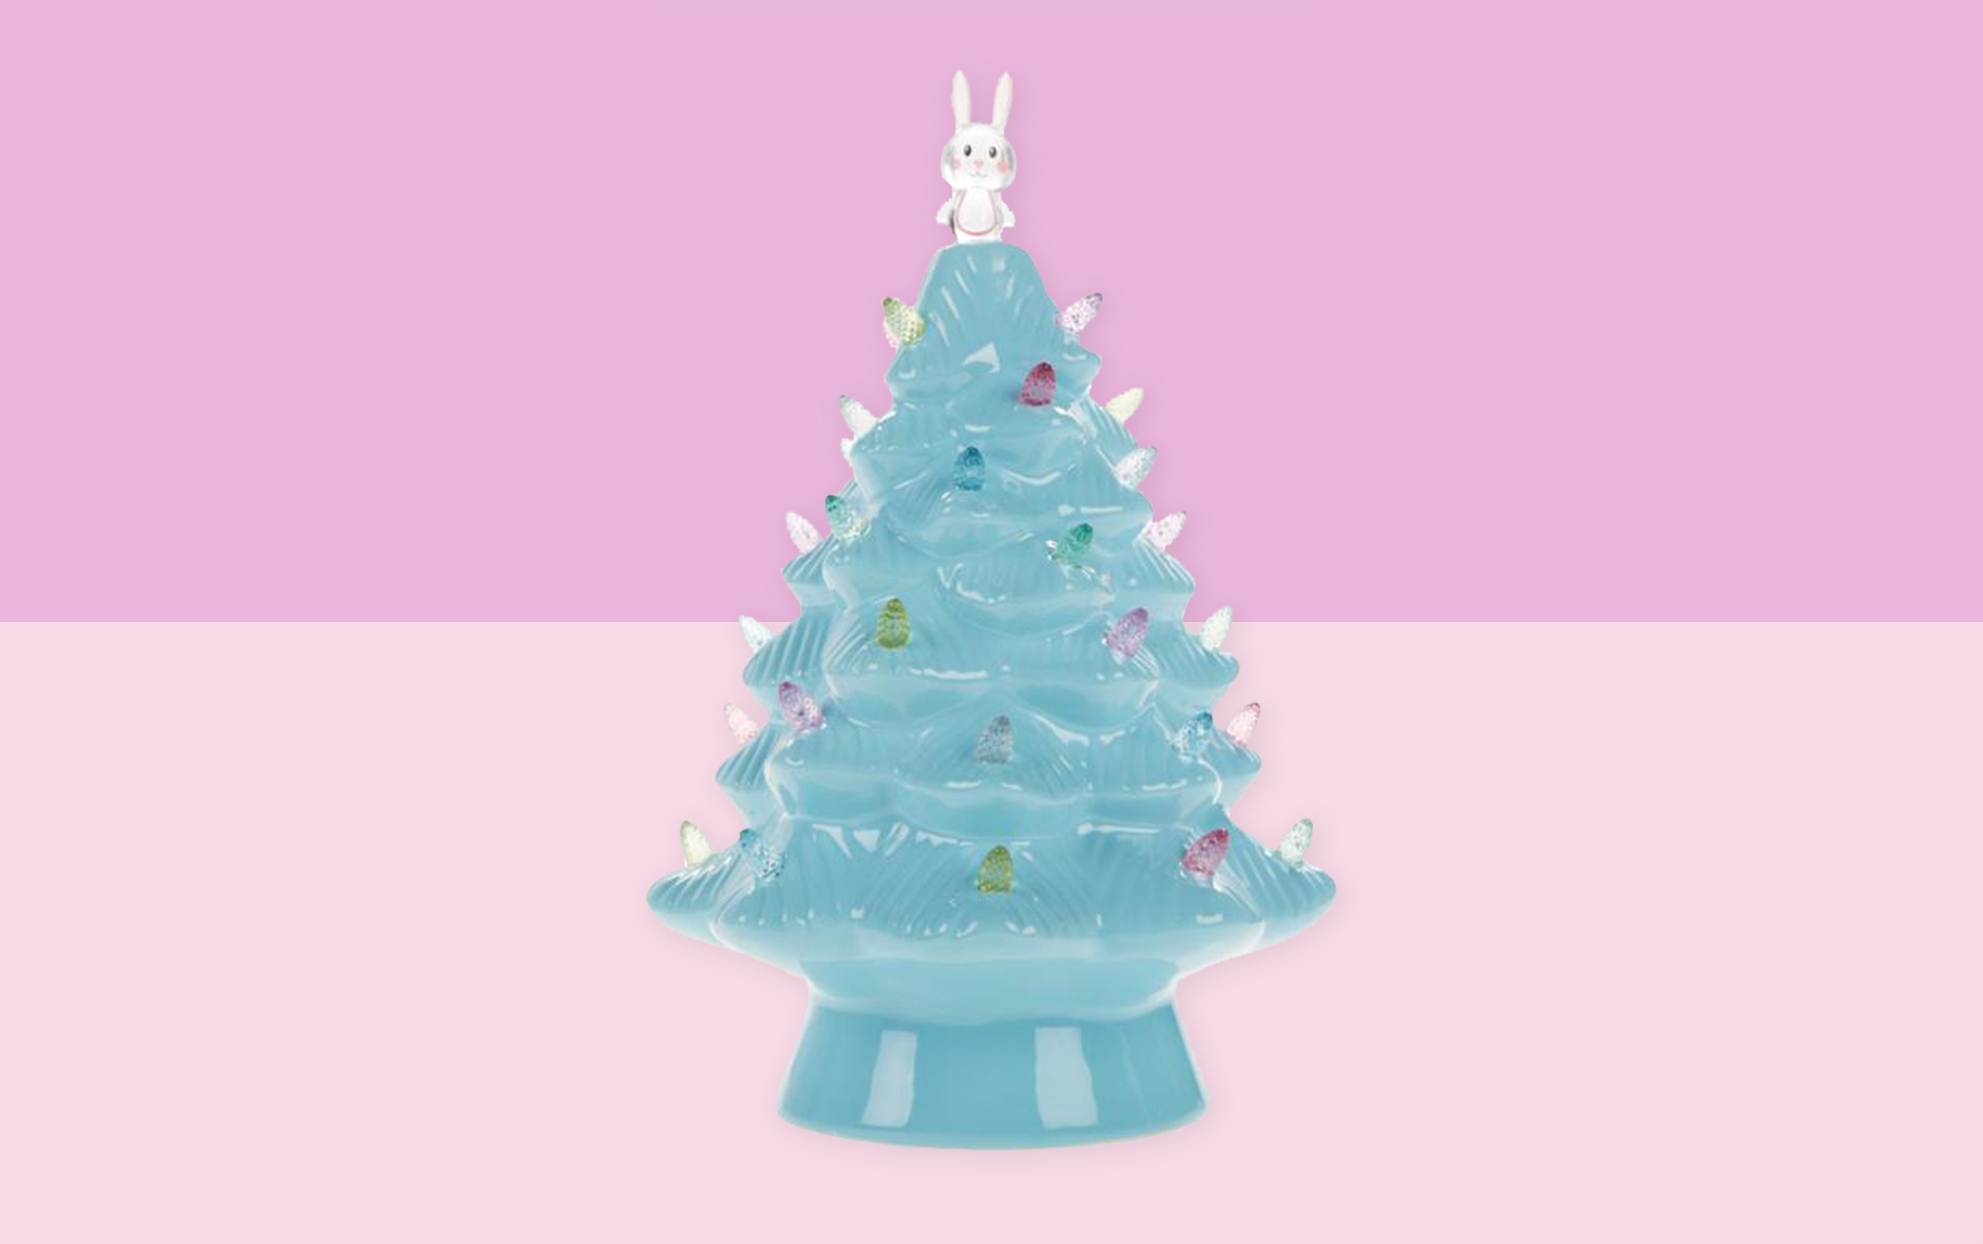 Teal Easter ceramic tree on a pink background